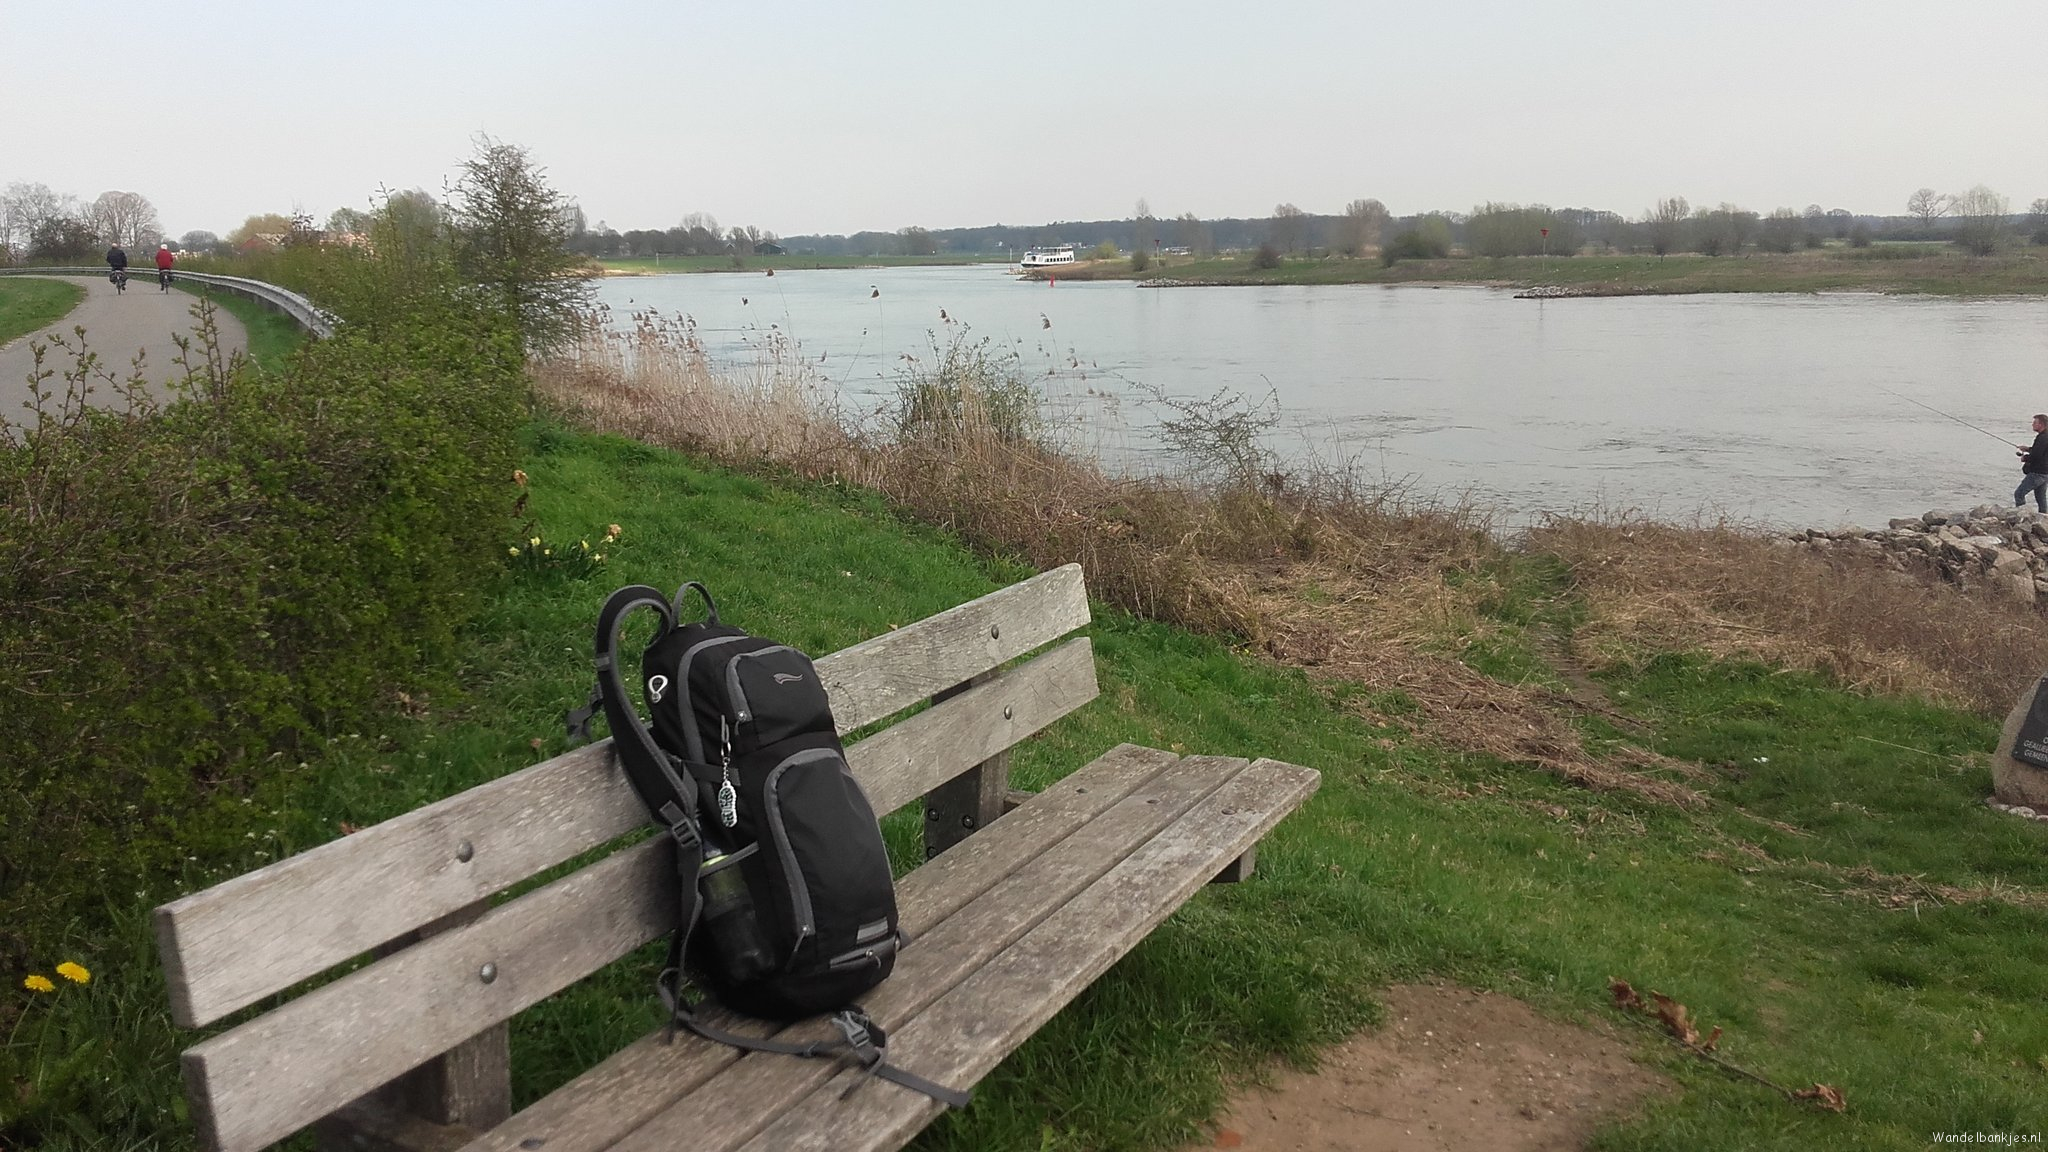 rt-p_scheltinga-walking-benches-to-the-ijssel-in-deb-neighborhood-of-bussloo-https-t-co-ezjoyfiqxn